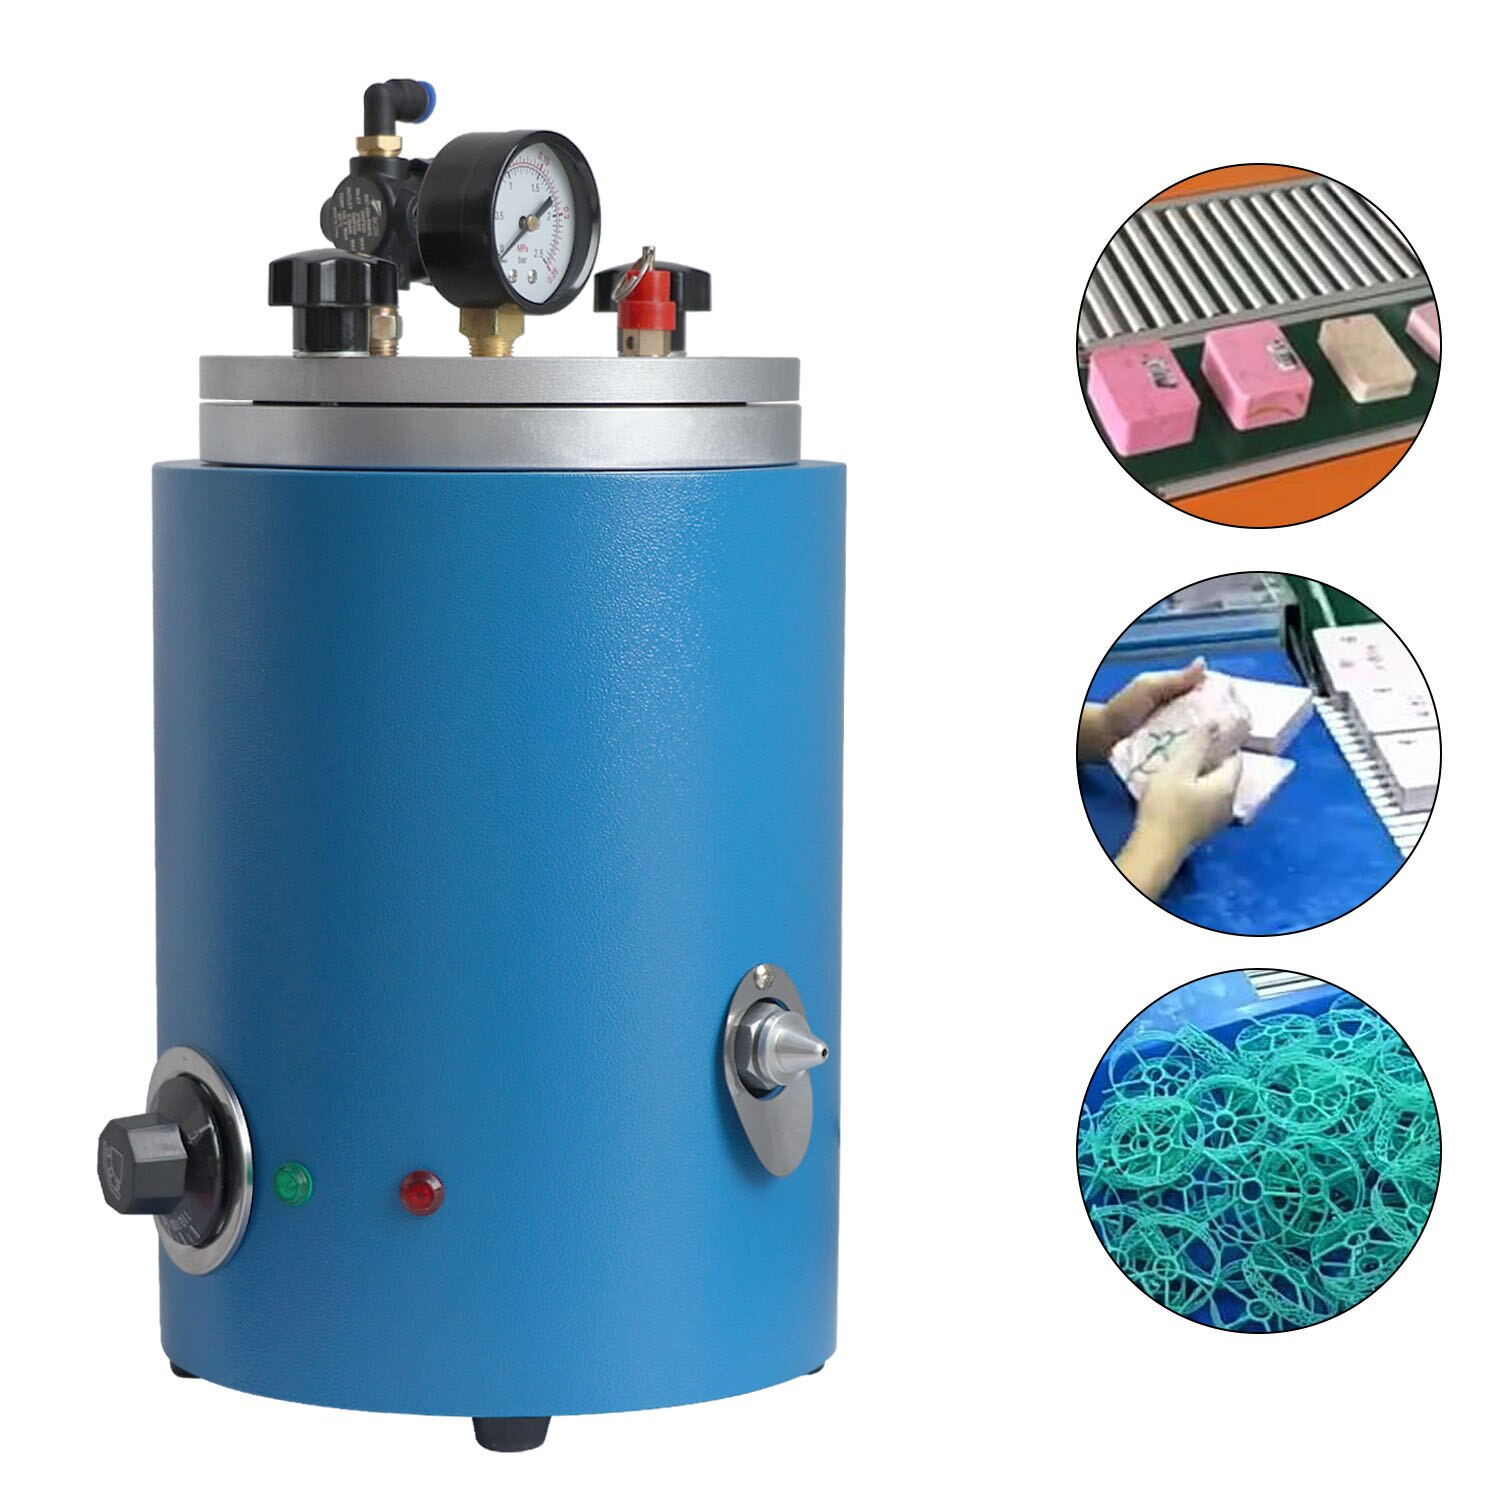 110v/220v Round Barrel Wax Injection Machine for Jewelry Mould Casting Machine Casting Machine Vacuum Injecting Nozzle Jewellery